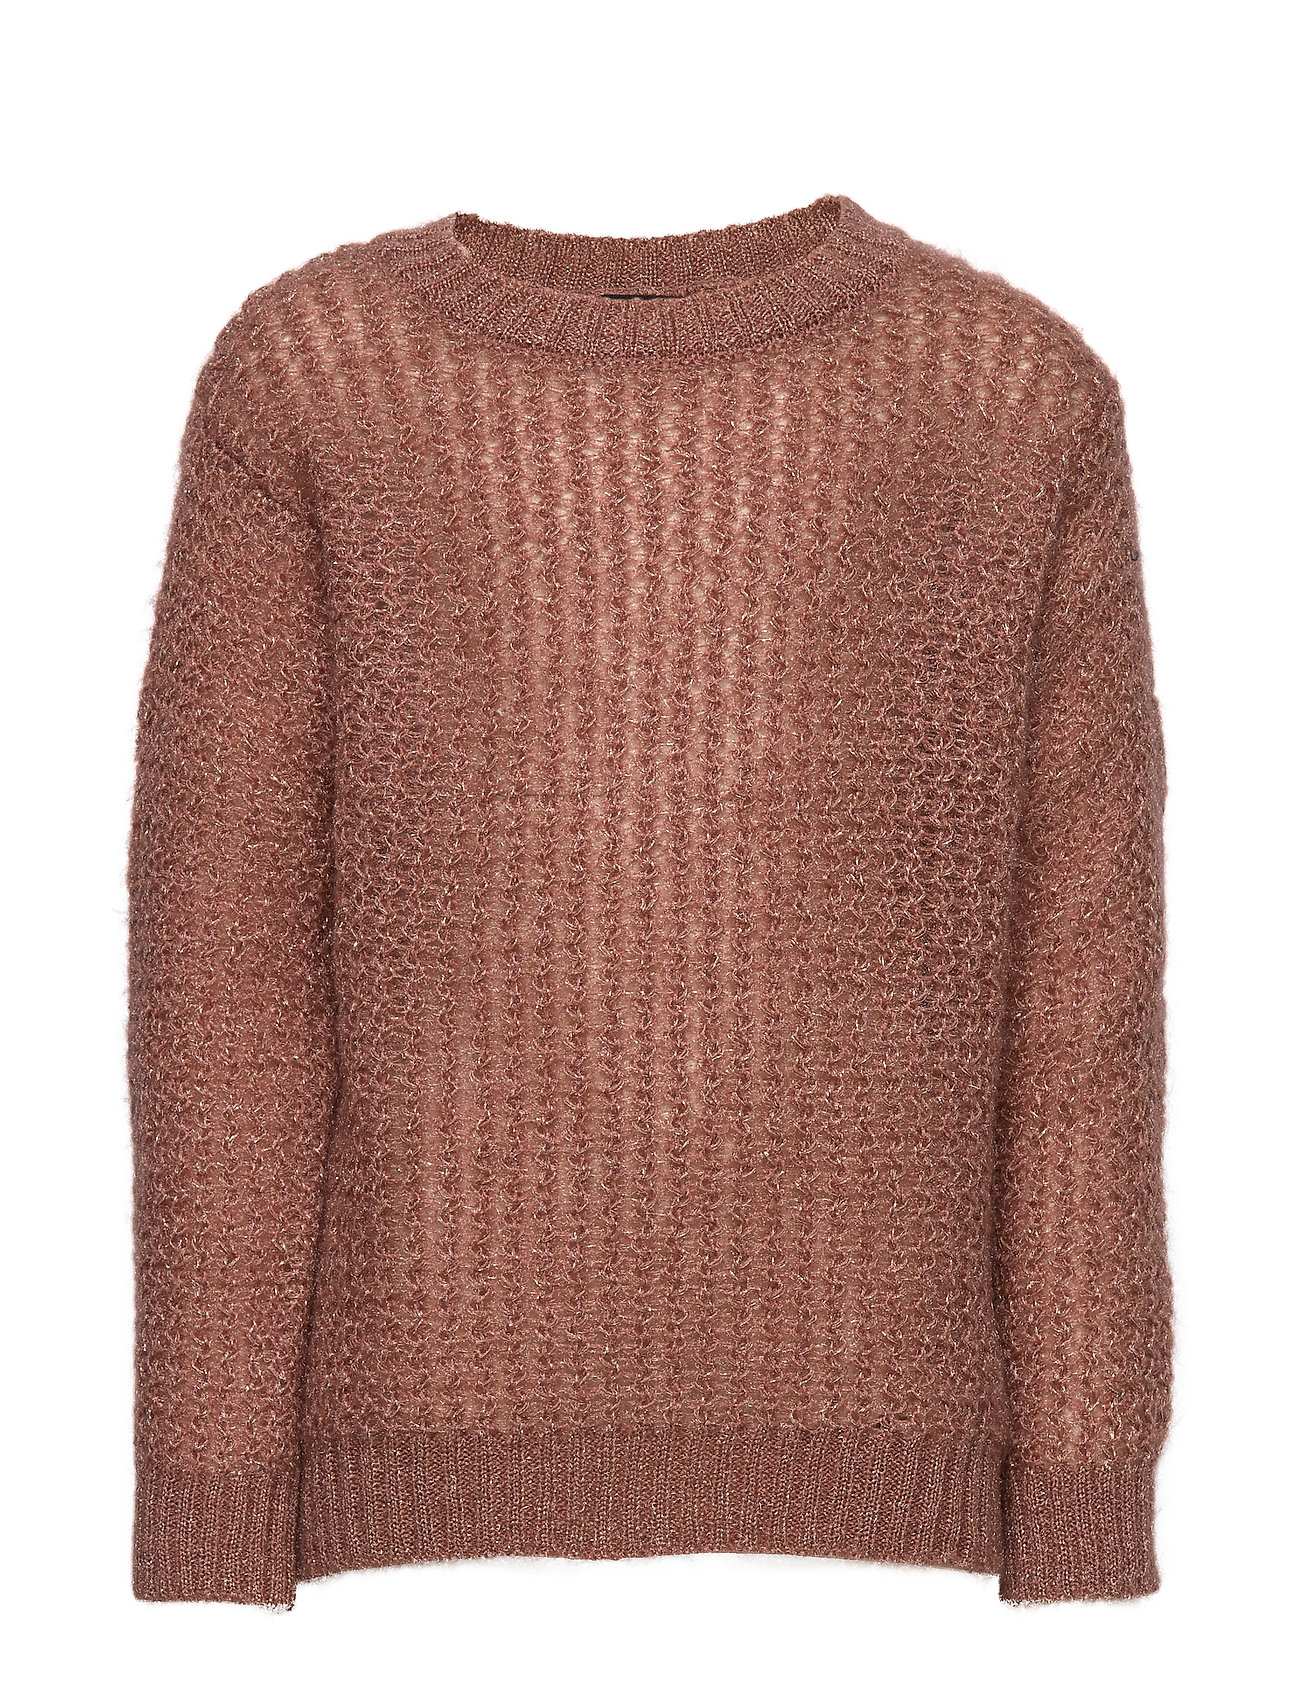 Petit by Sofie Schnoor Knit Blouse - DUSTY ROSE